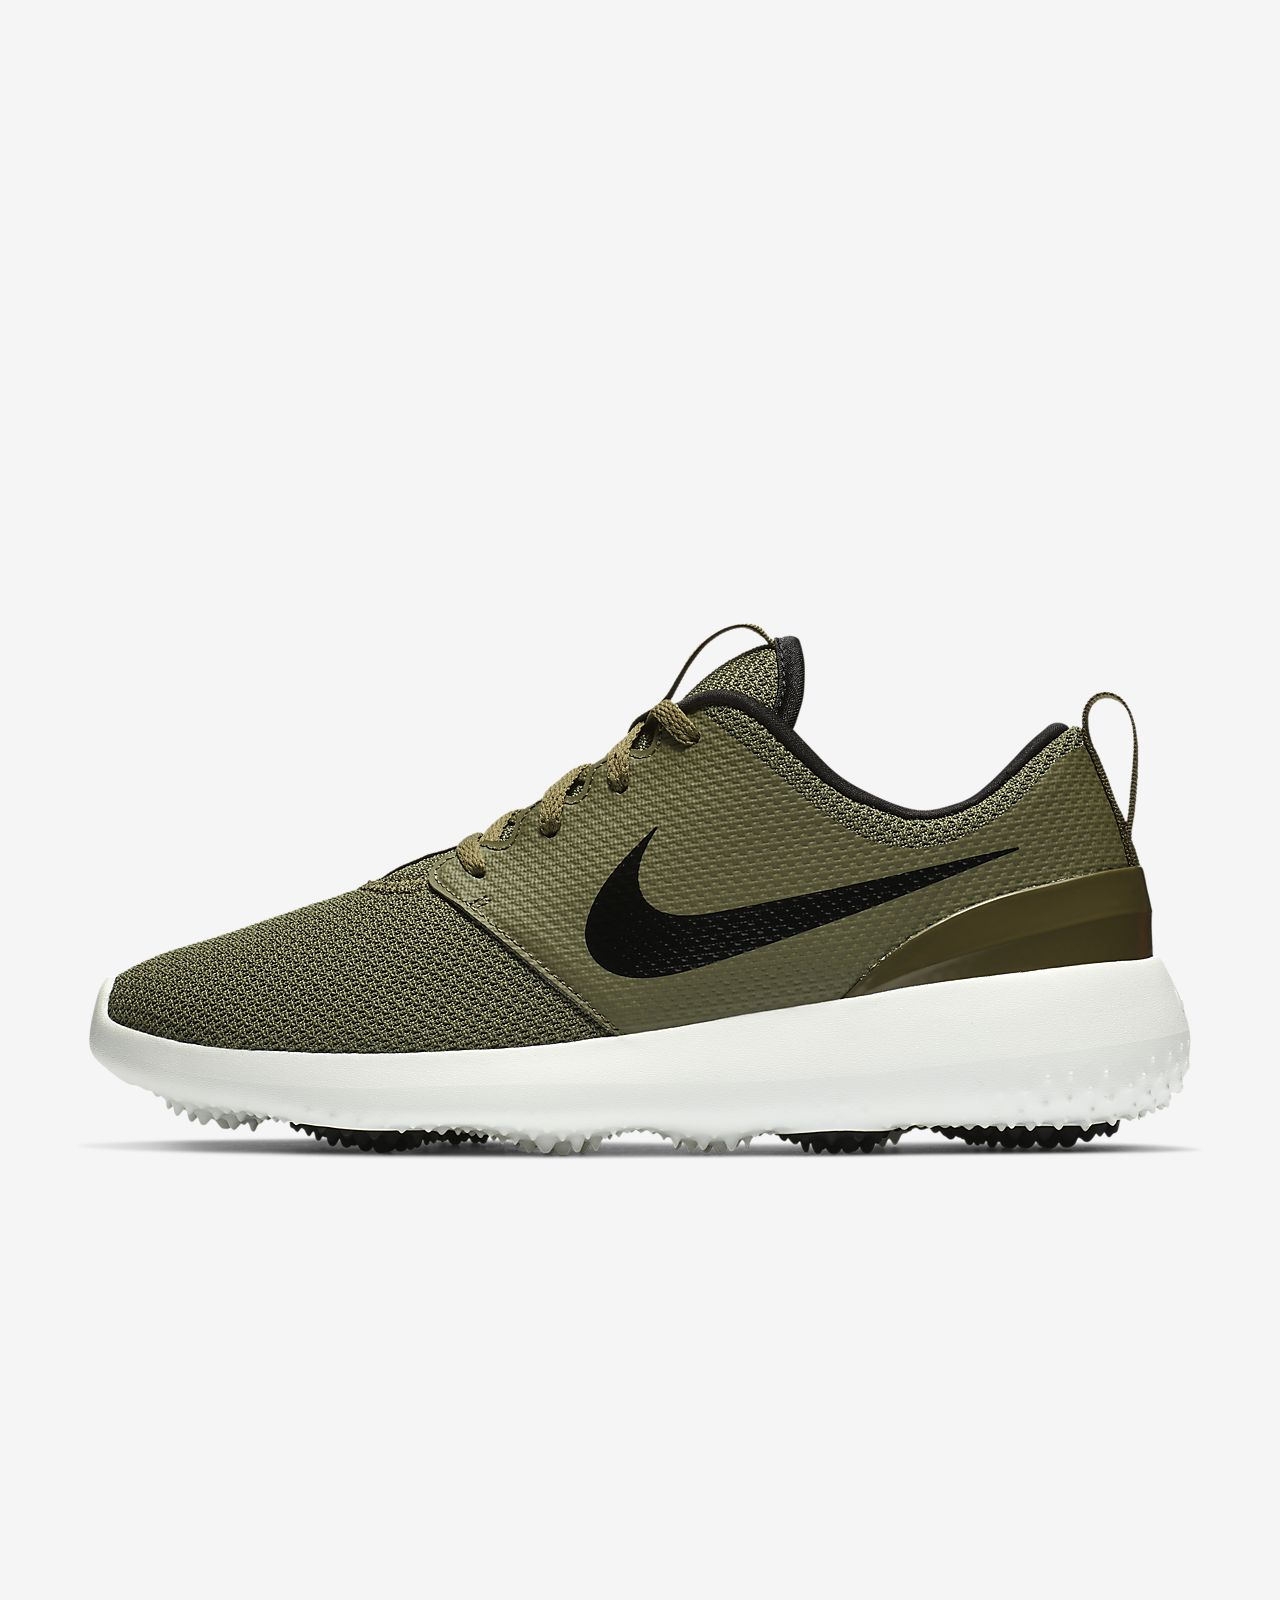 cc7b5228eeed Nike Roshe G Men s Golf Shoe. Nike.com GB